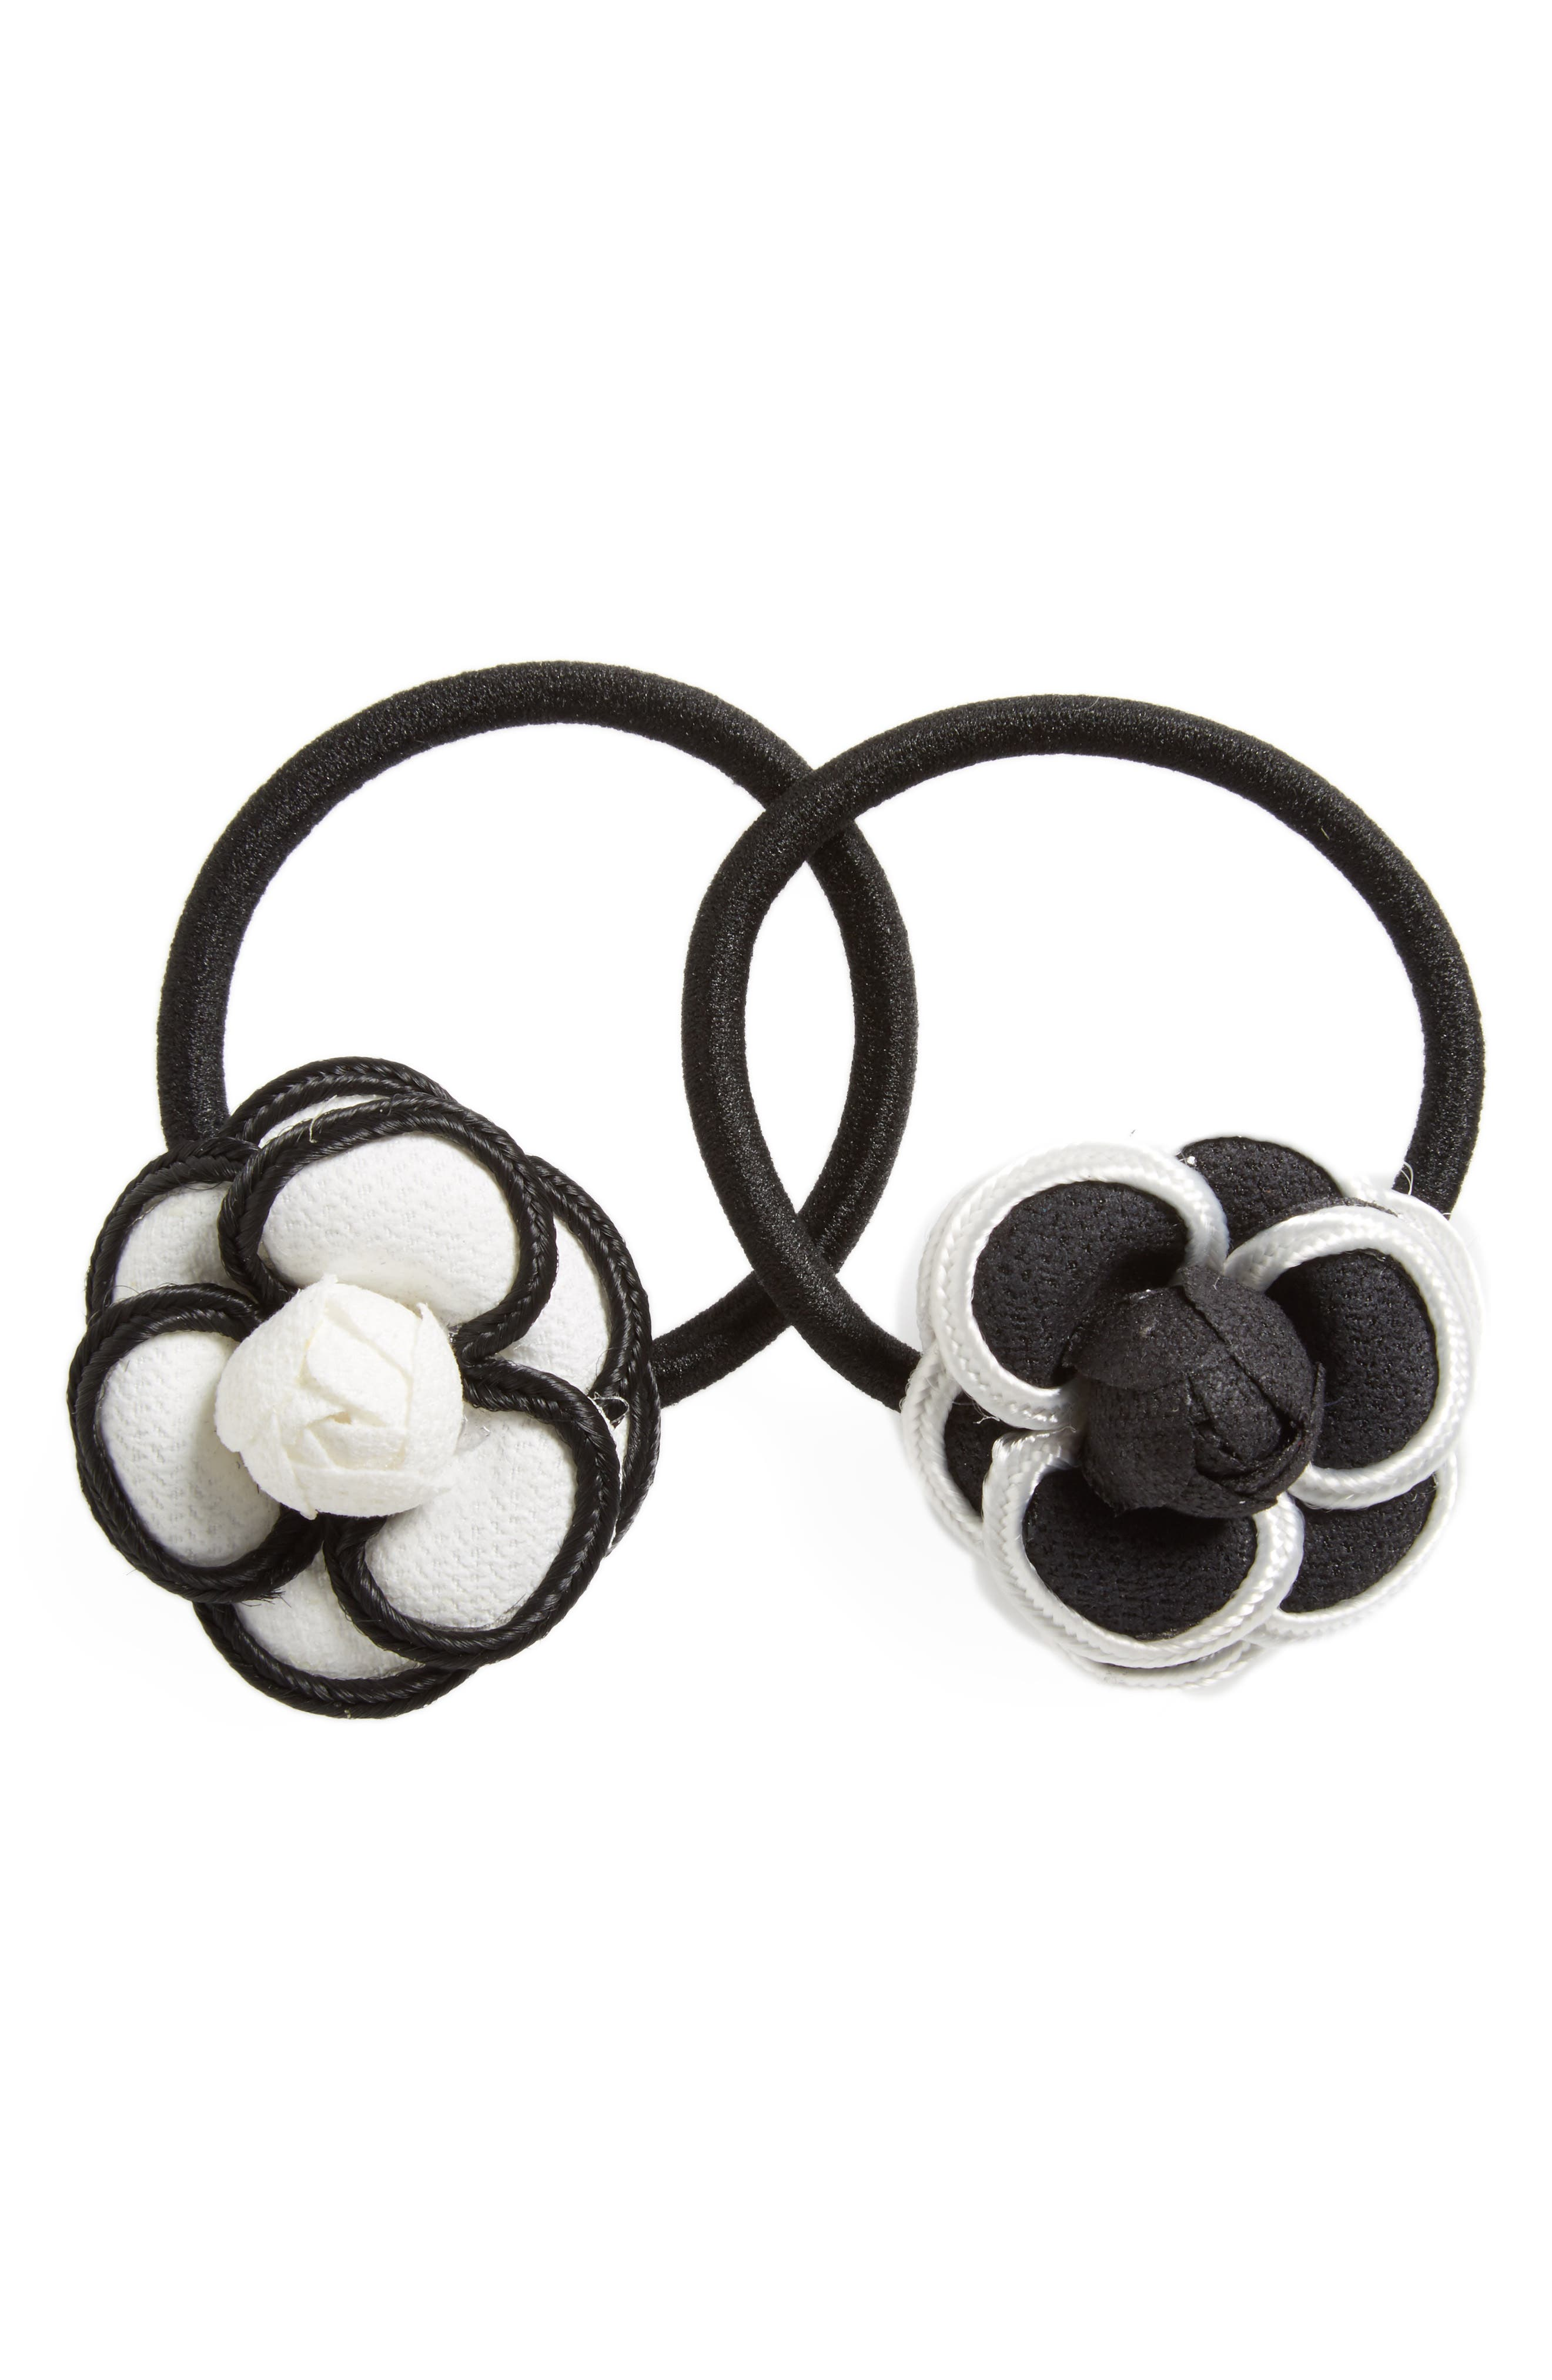 2-Pack Floral Ponytail Holders,                             Main thumbnail 1, color,                             011